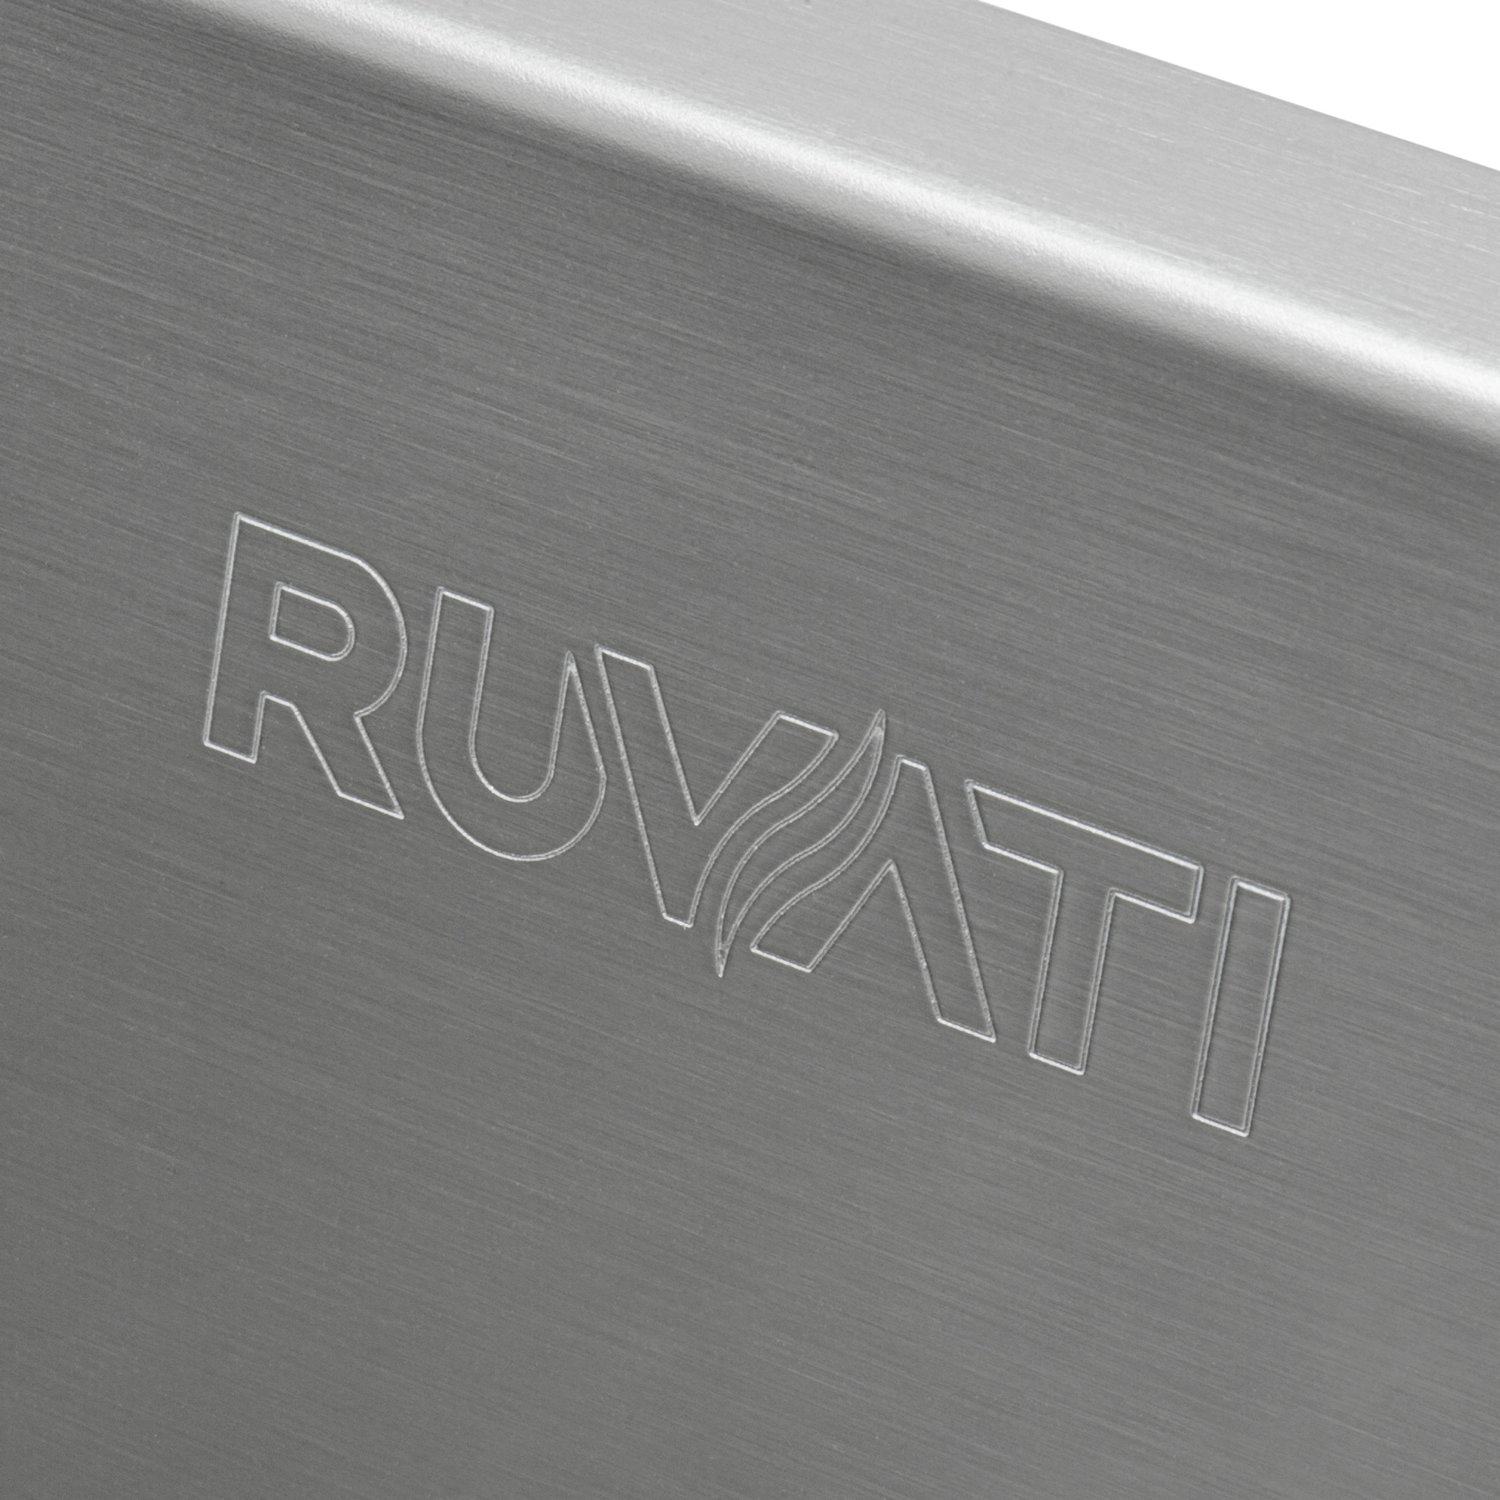 Ruvati 14-inch Undermount 16 Gauge Zero Raduis Bar Prep Kitchen Sink Stainless Steel Single Bowl - RVH7110 by Ruvati (Image #6)